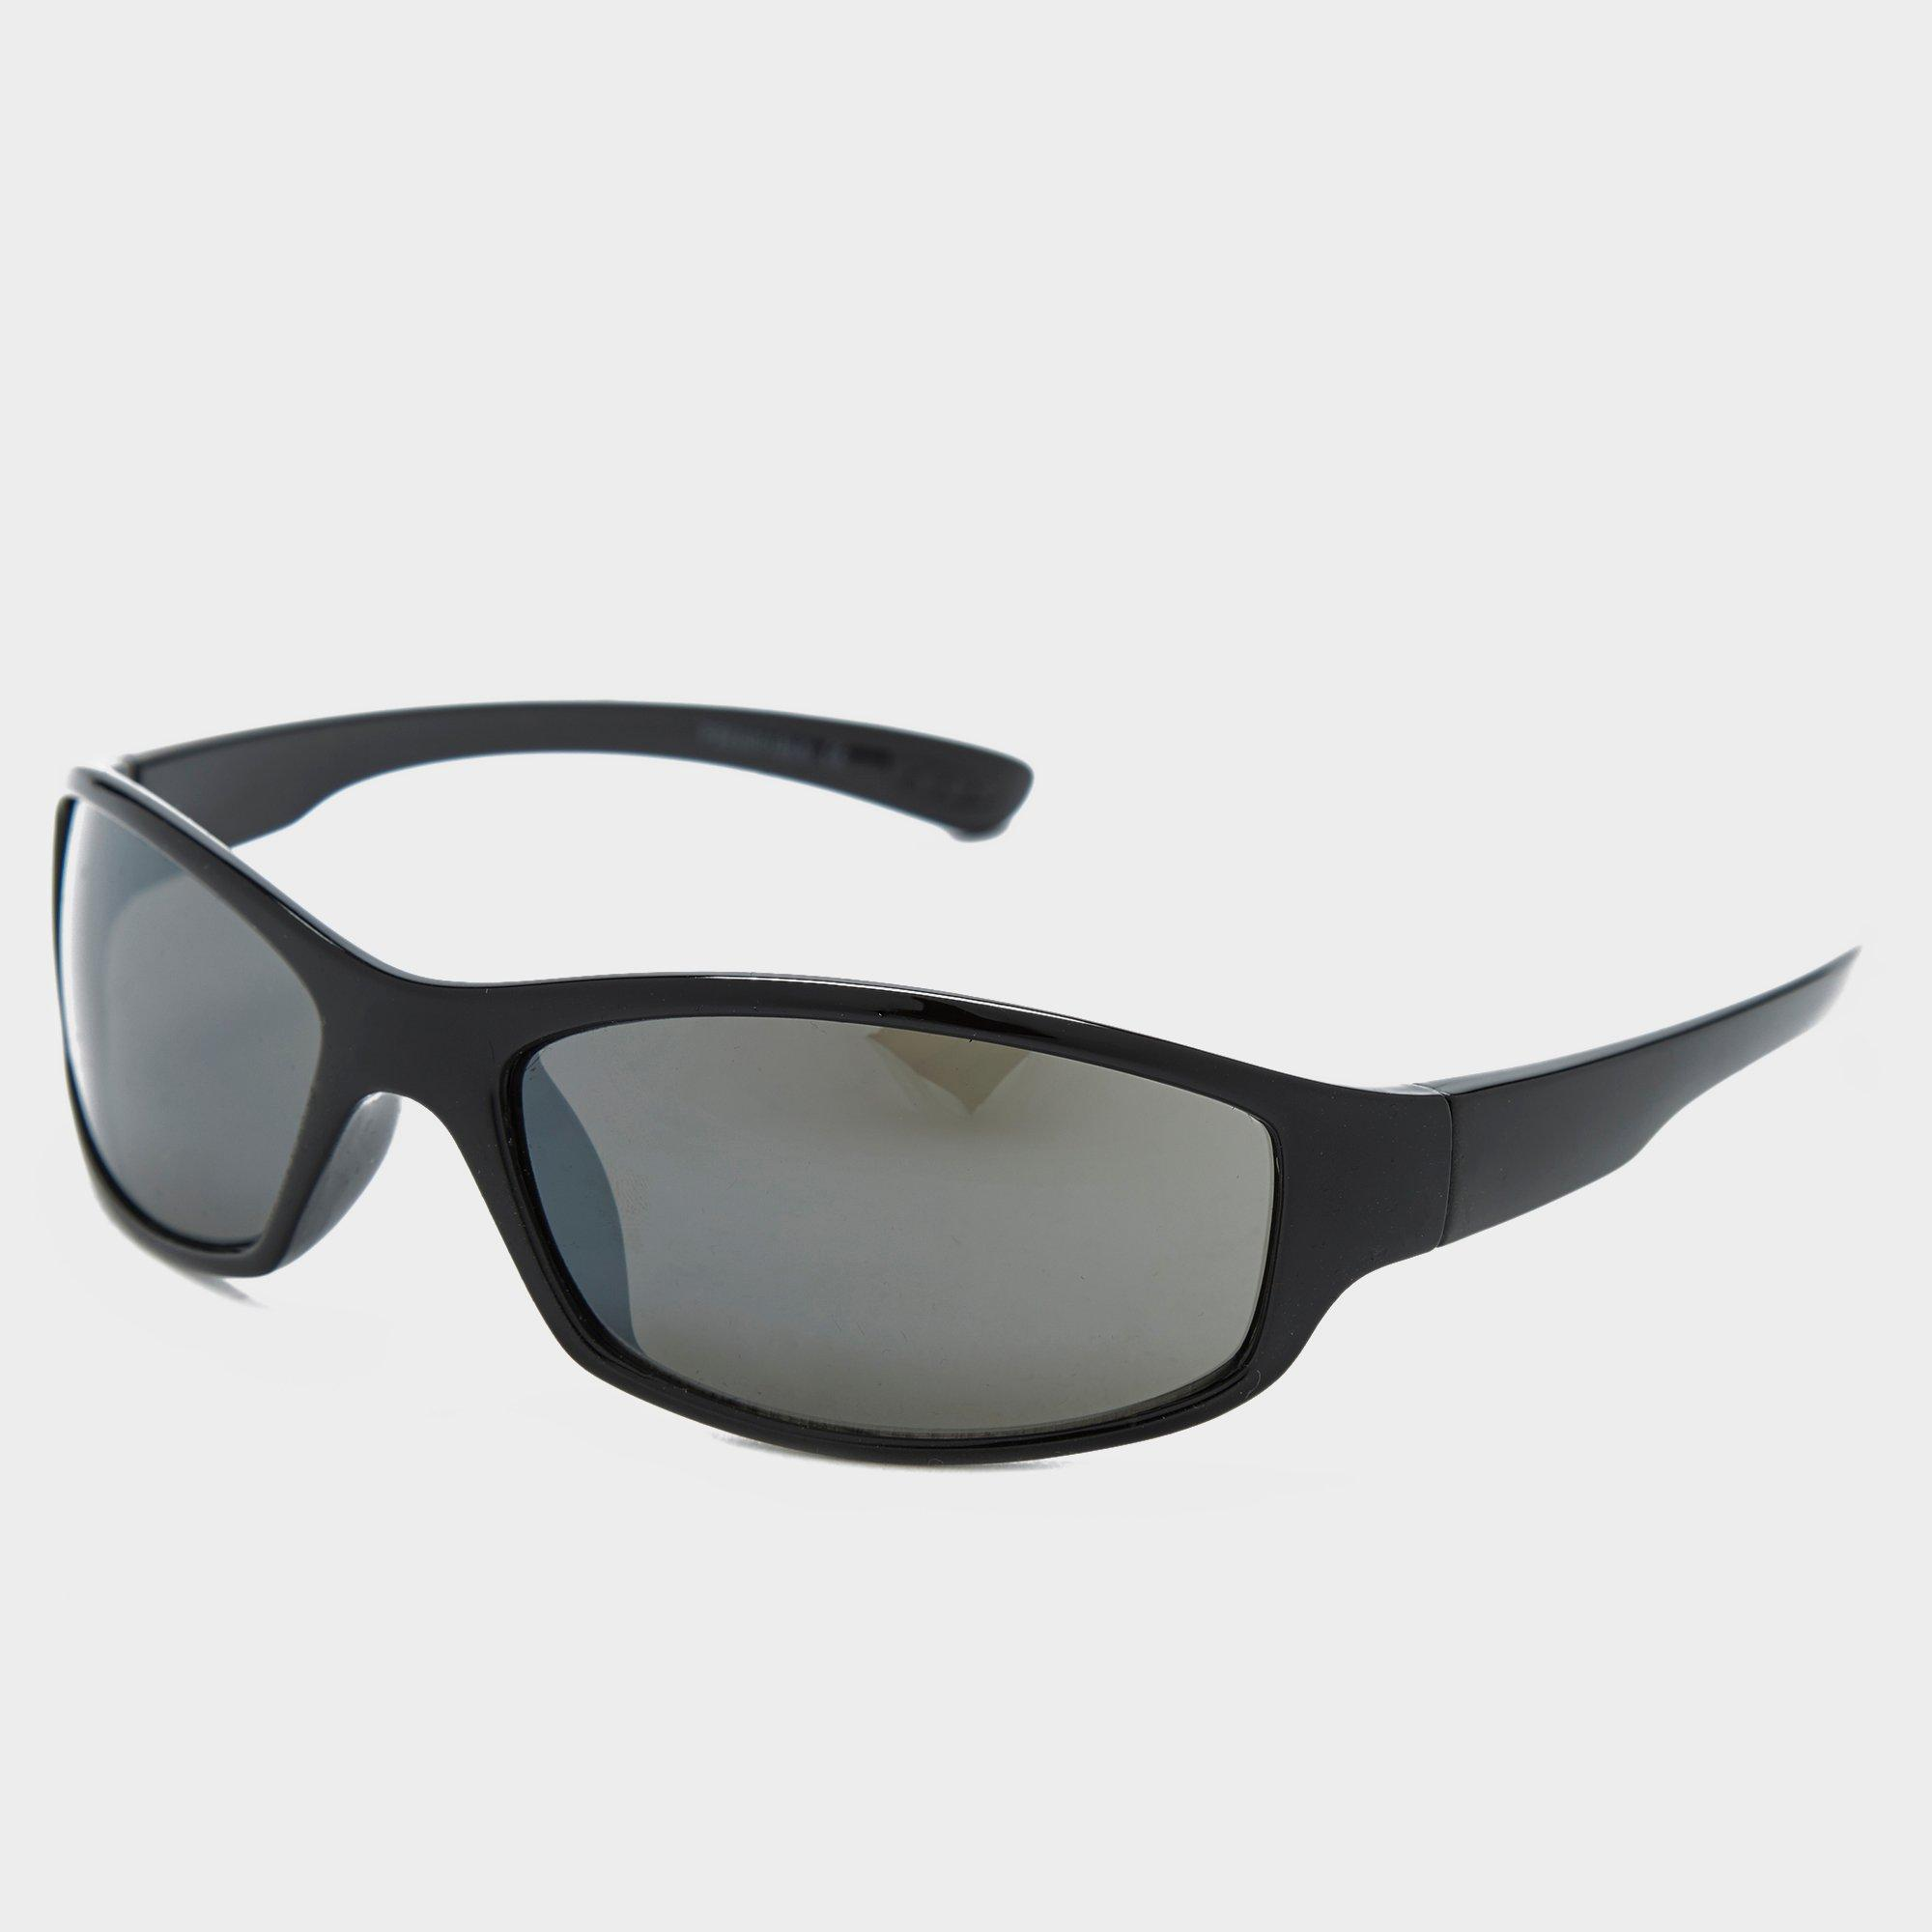 Peter Storm Men's Sport Wrap-Around Sunglasses, Black